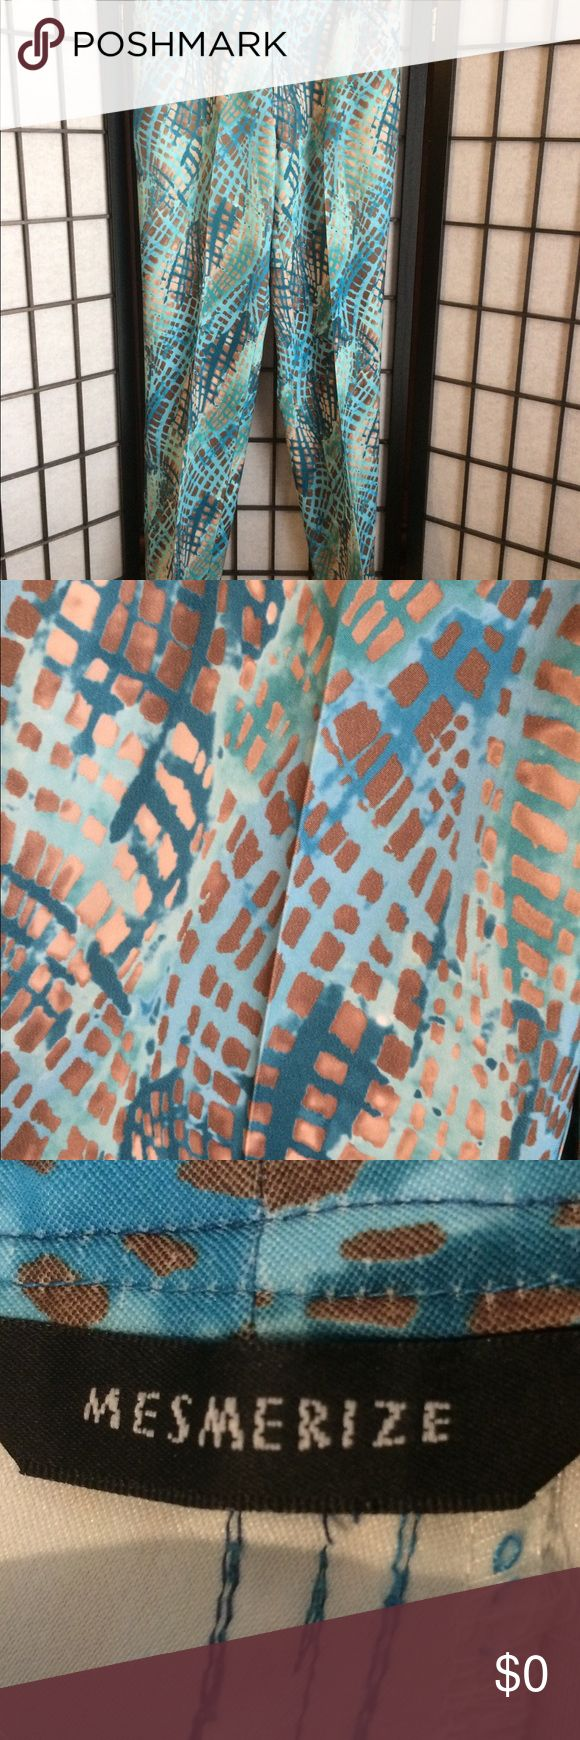 Mesmerize Turquoise Pants Mesmerize Turquoise Pants With Brown Tones. These pants are so comfortable. Mesmerize Pants Straight Leg